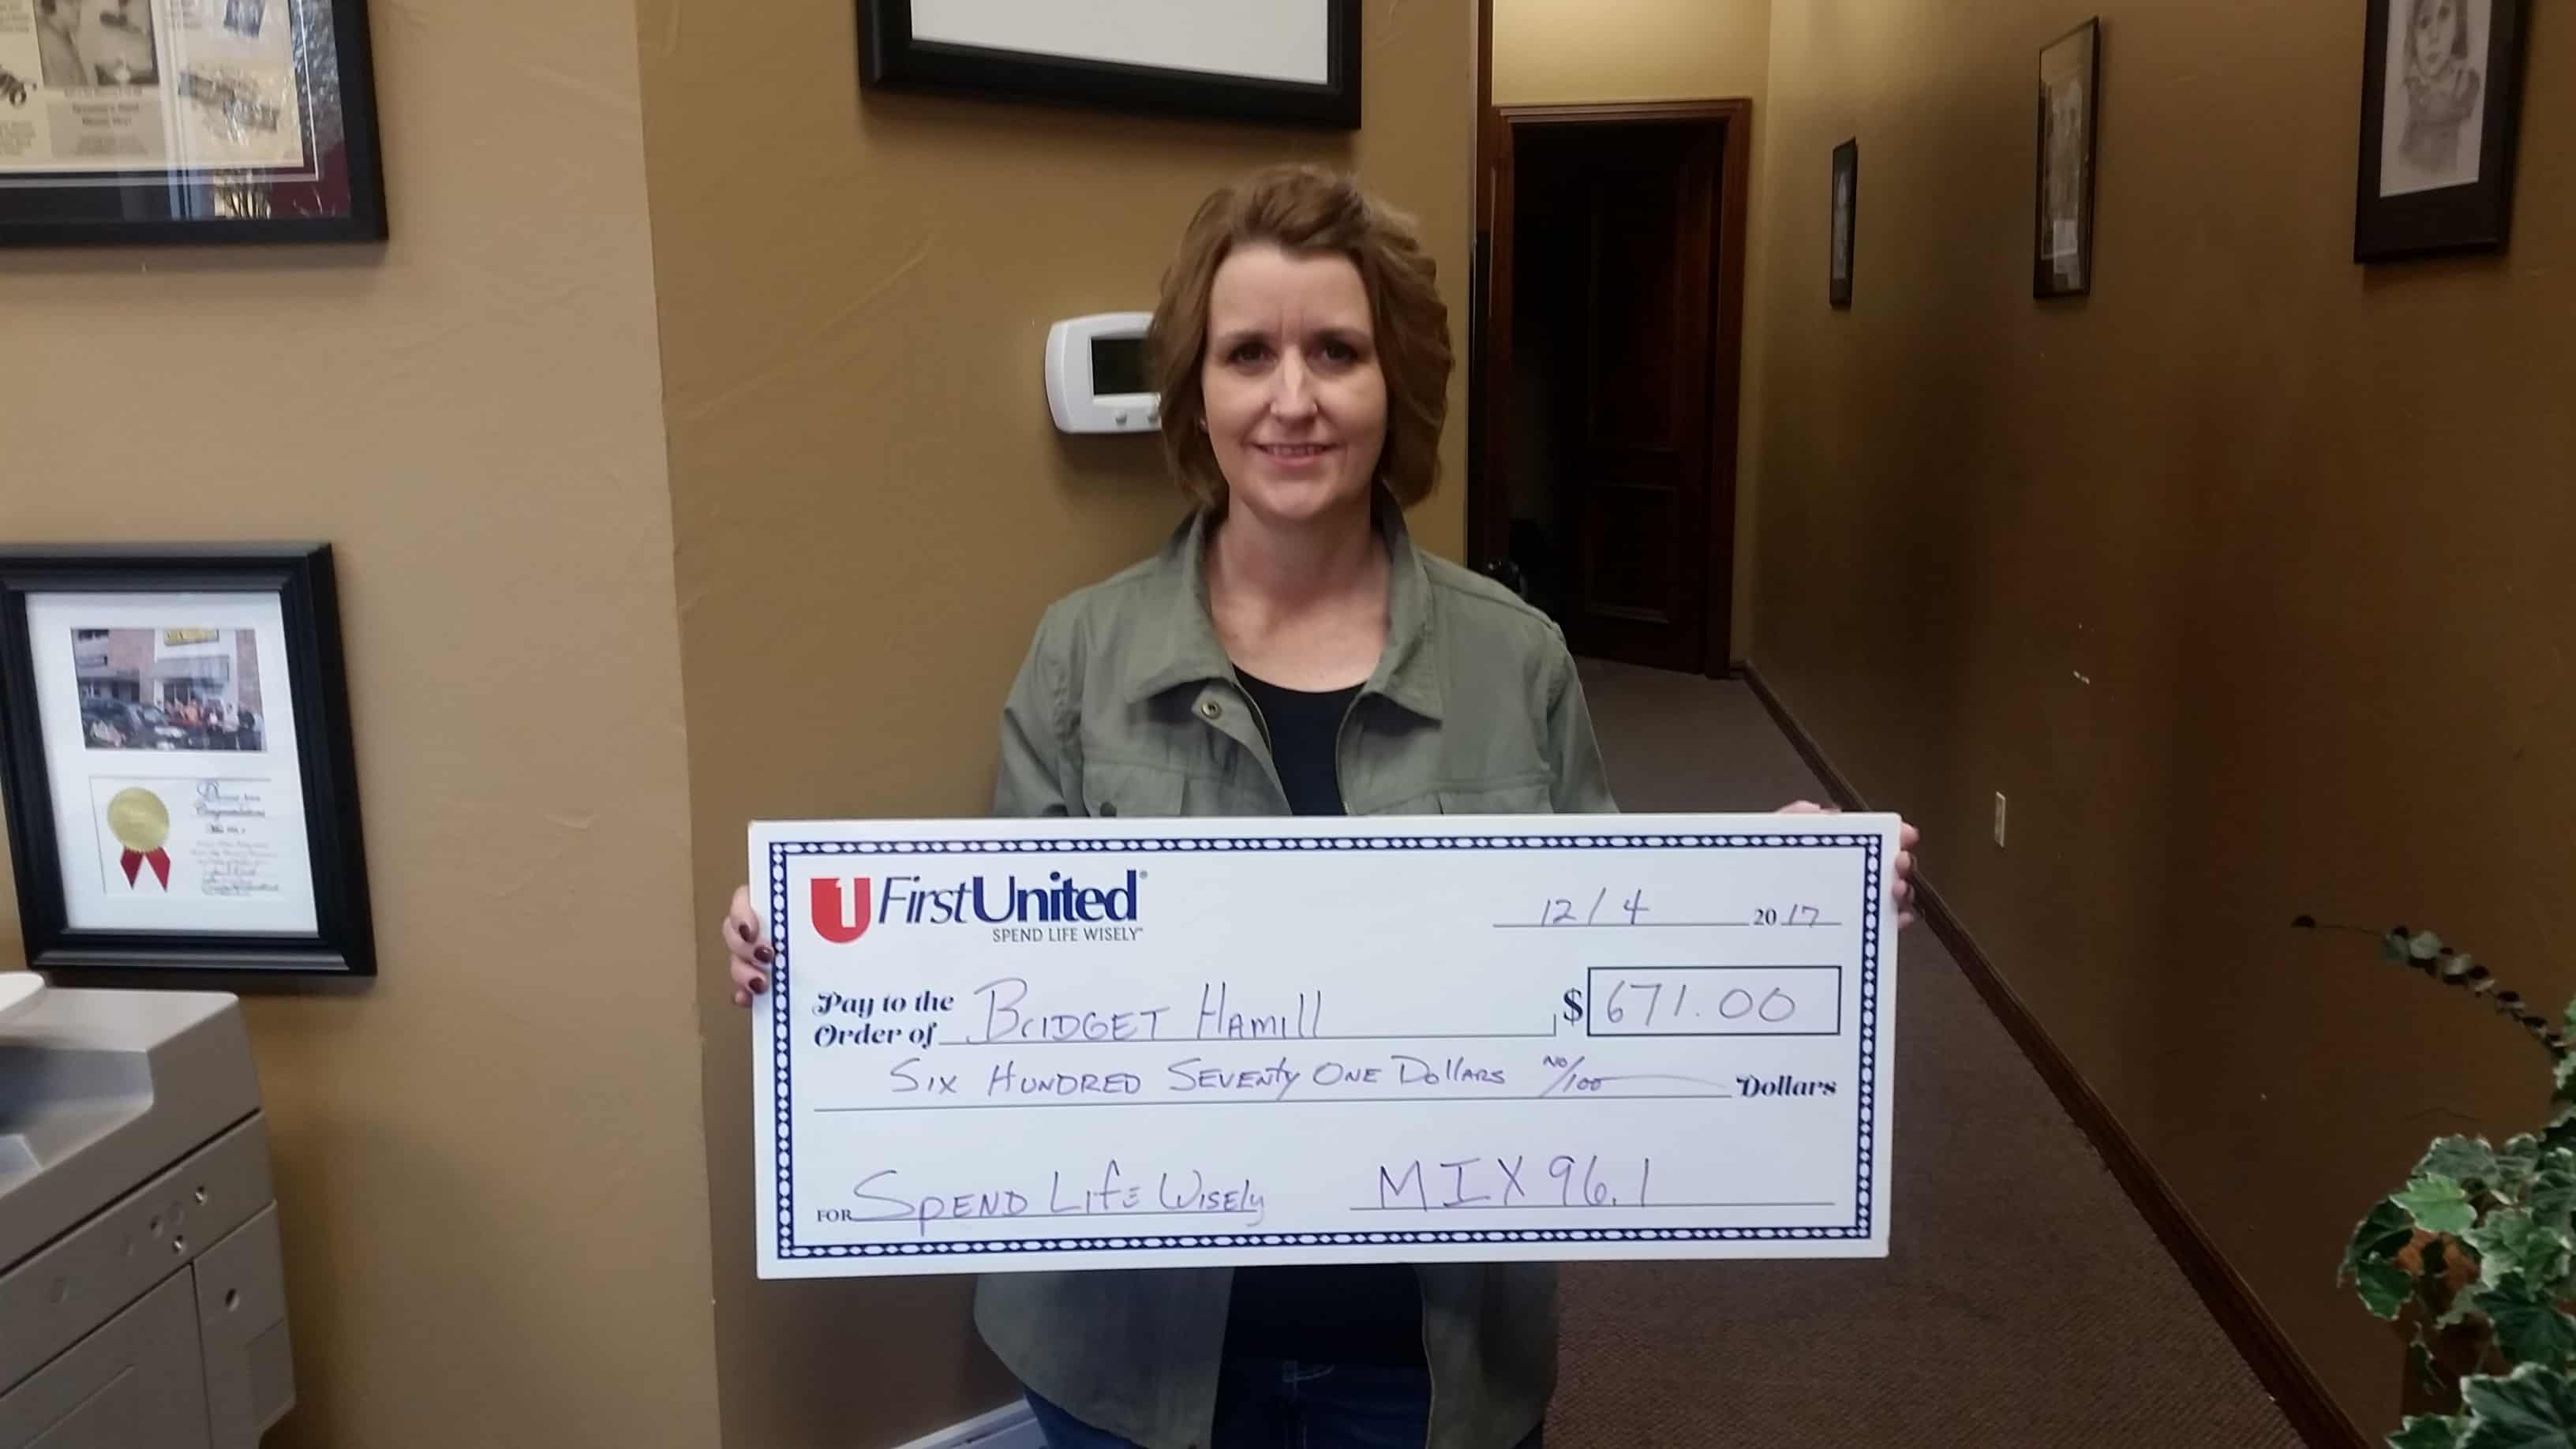 Bridget Hamillwon $671 in the Spend Life Wisely Contest